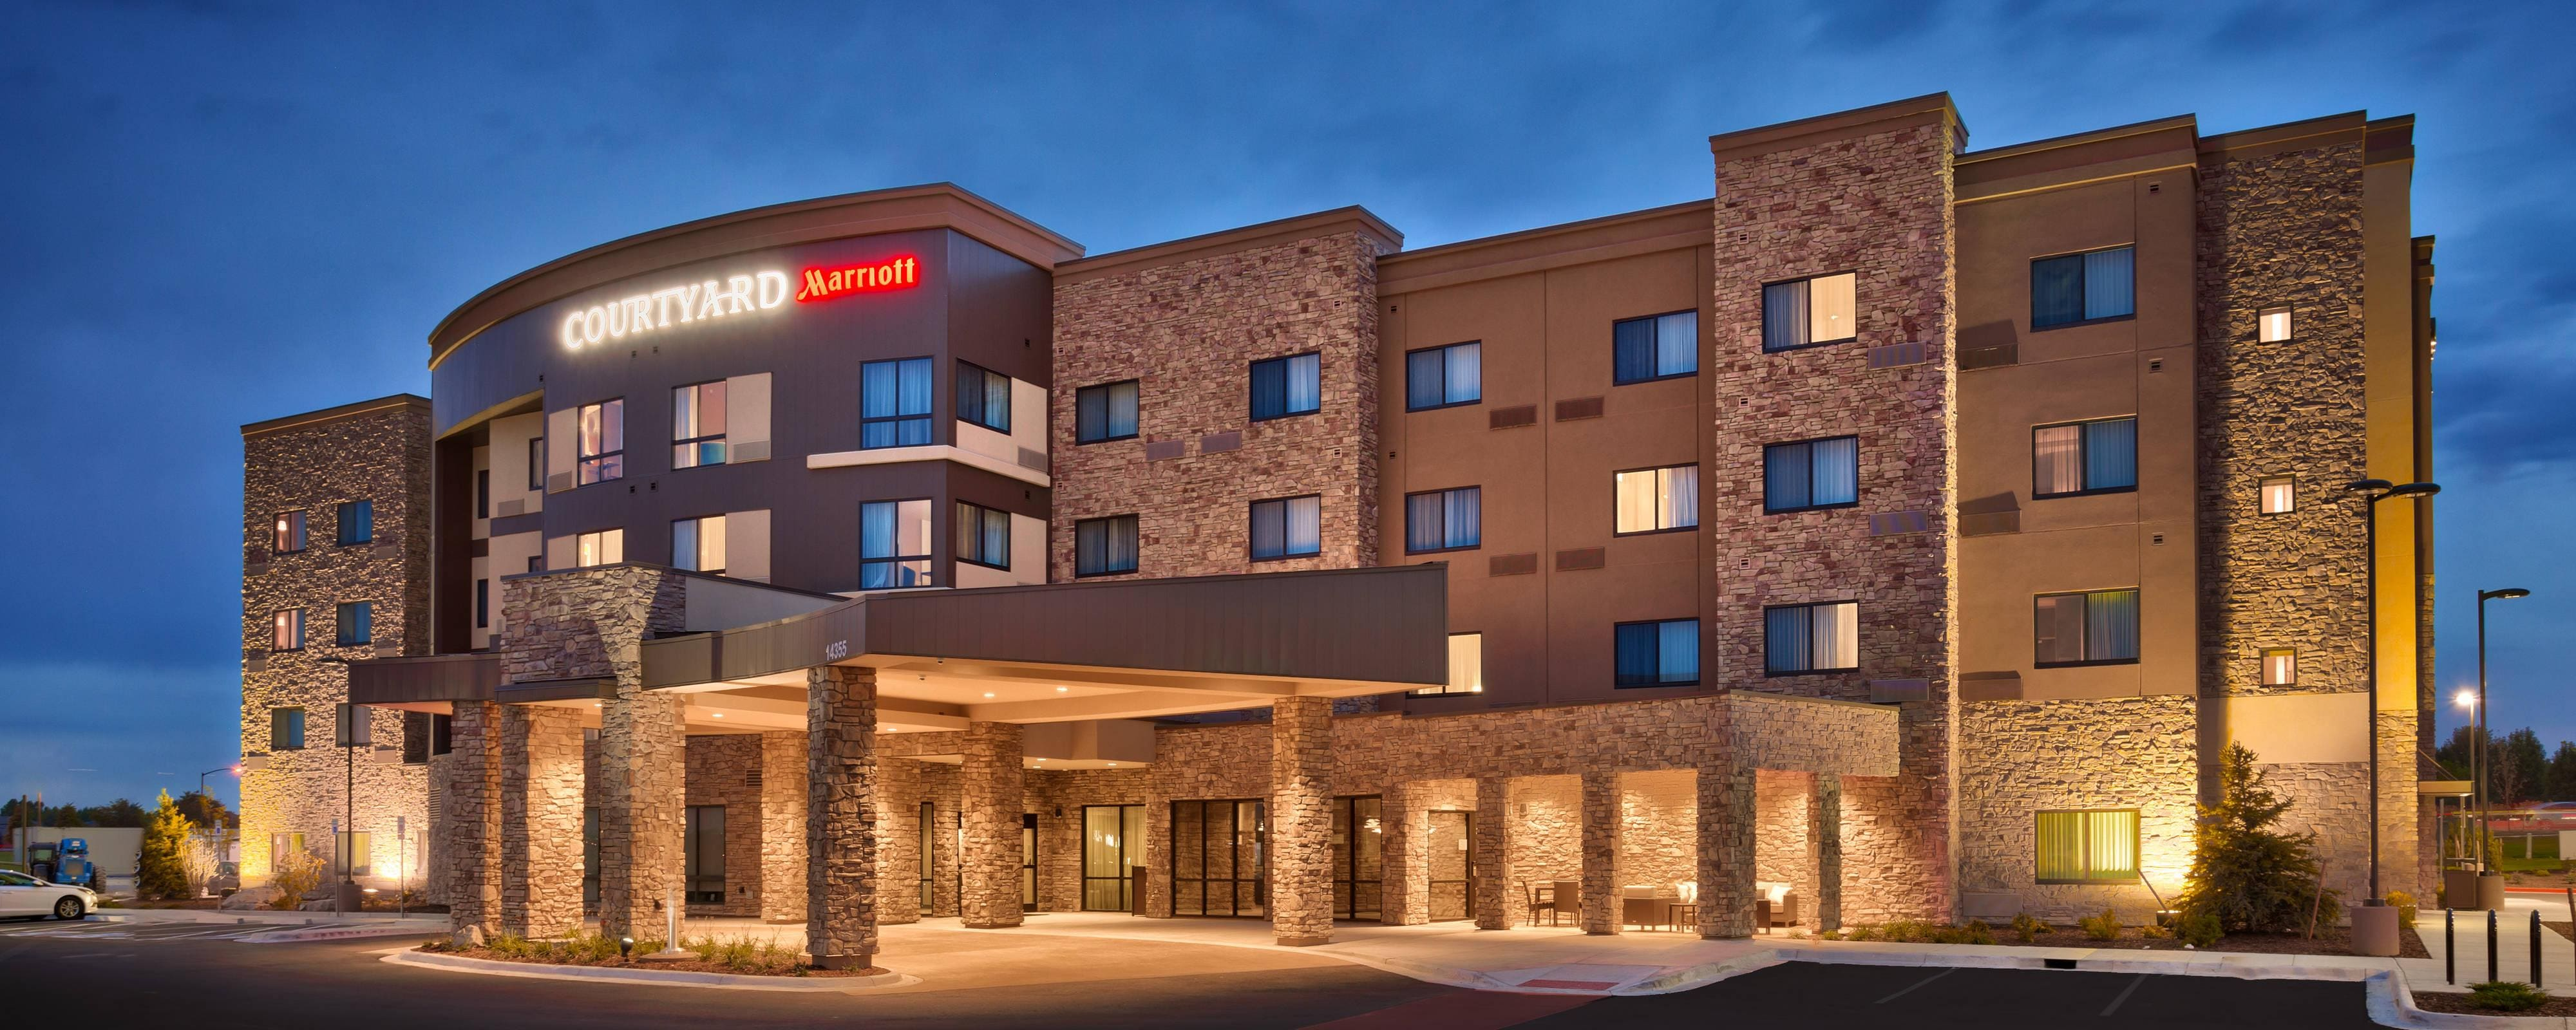 Hotel in Westminster, CO | Courtyard Denver North/Westminster